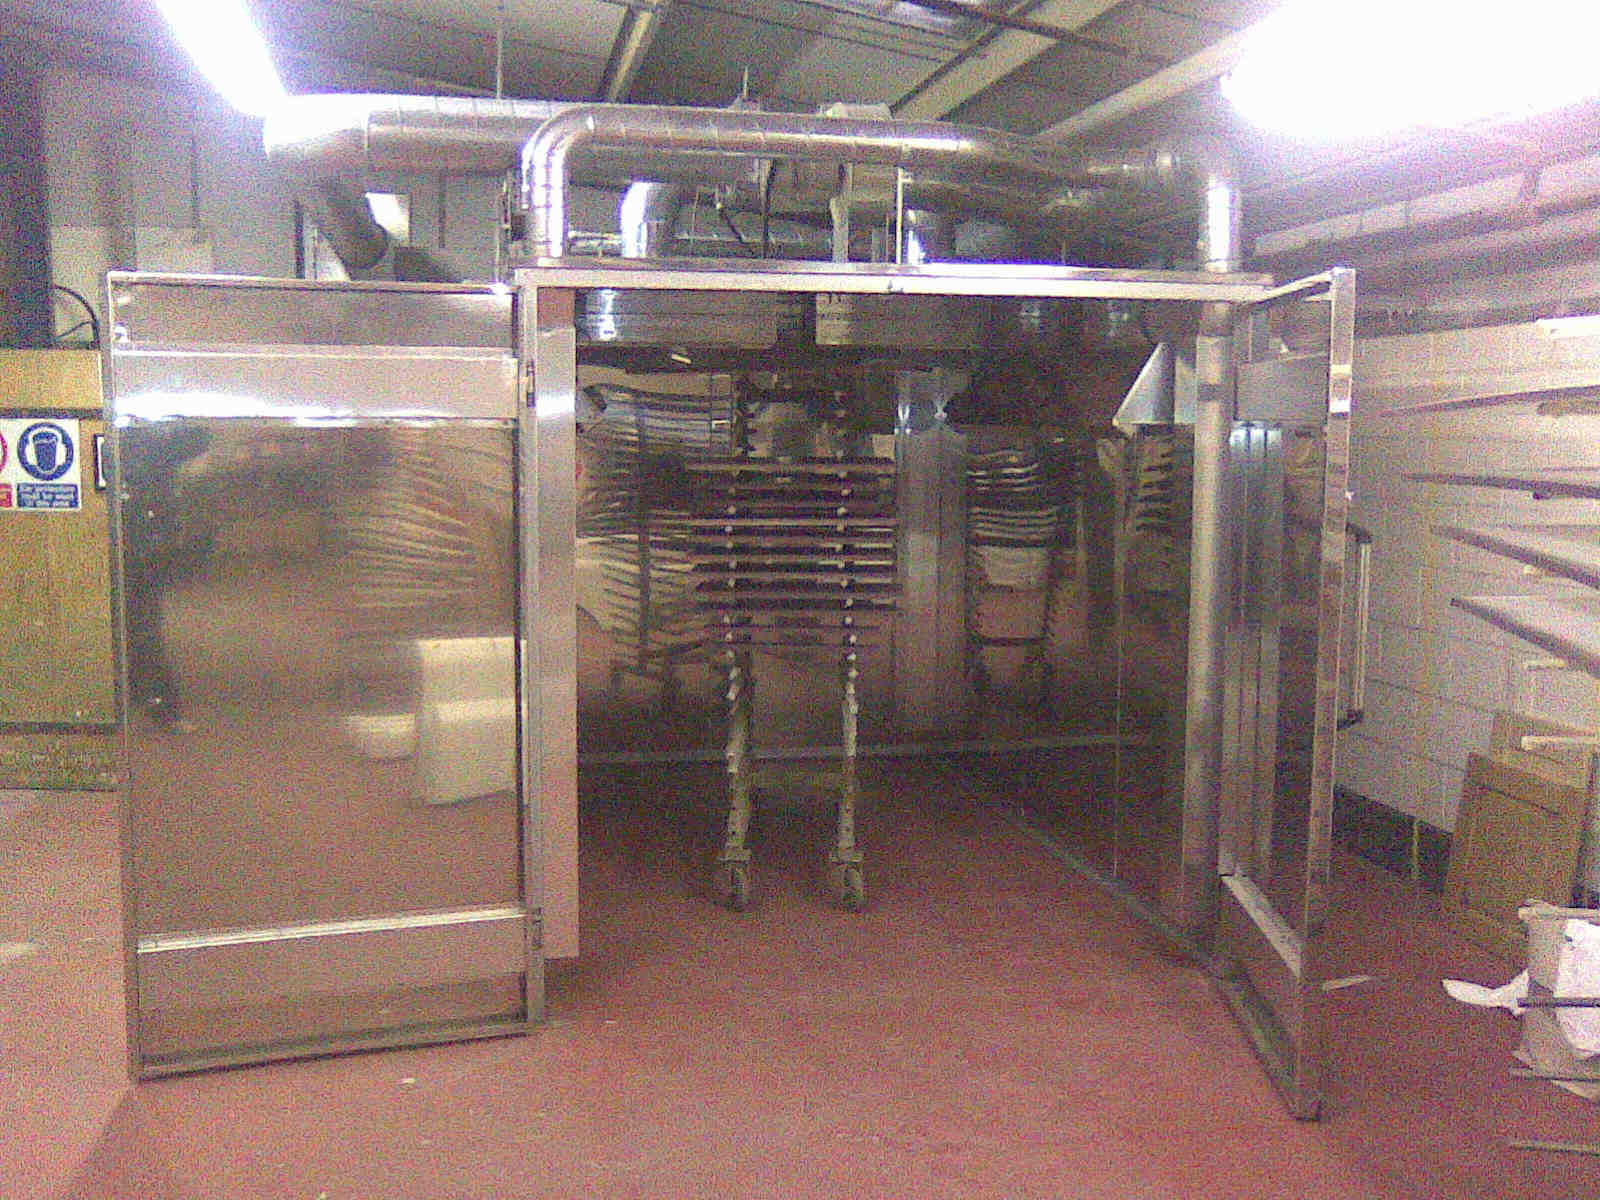 Catbox catalytic box oven loaded with kitchen cabinet doors